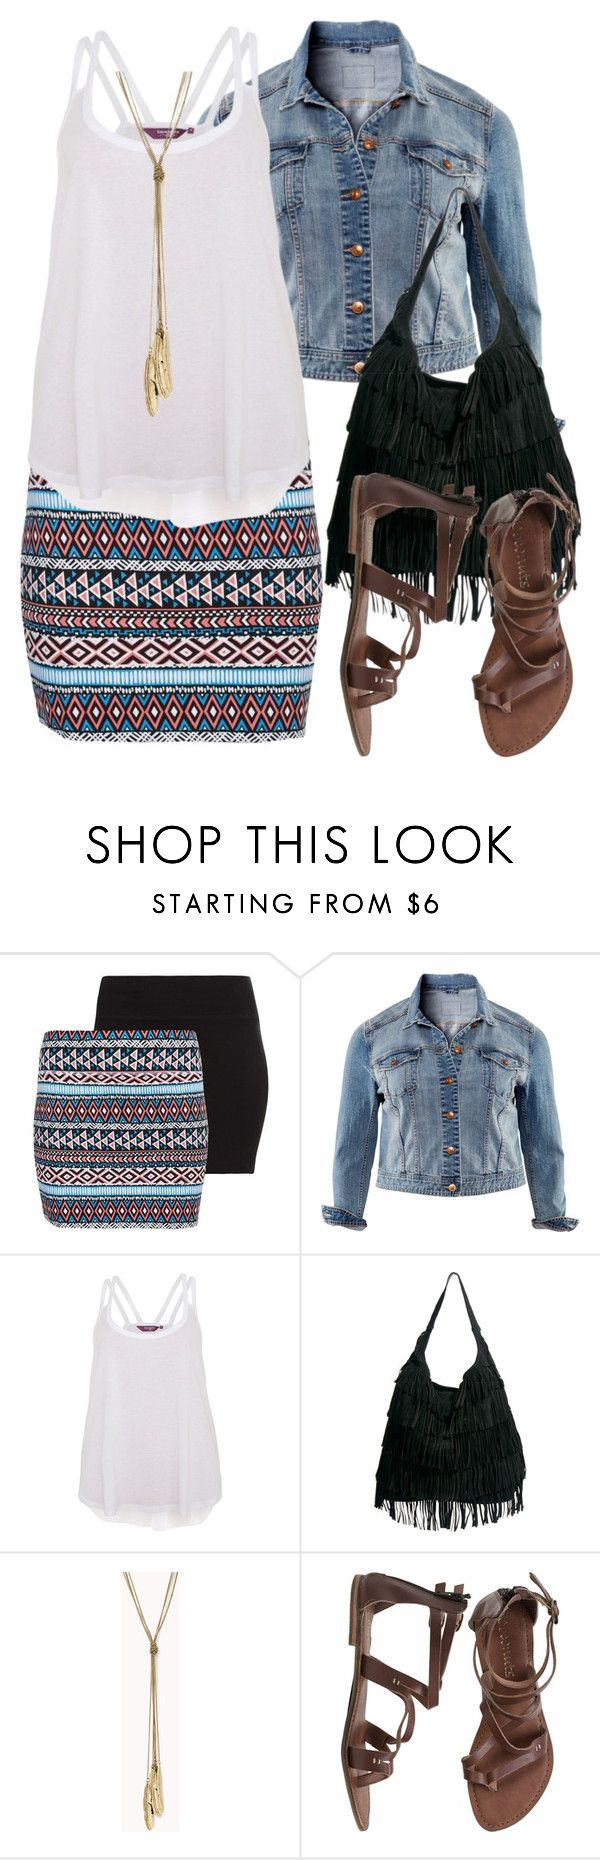 """Aztec Skirt - Plus Size"" by alexawebb ❤ liked on Polyvore featuring H&M, ASOS, Forever 21, Summer, Aztec, plus, plussize and size"